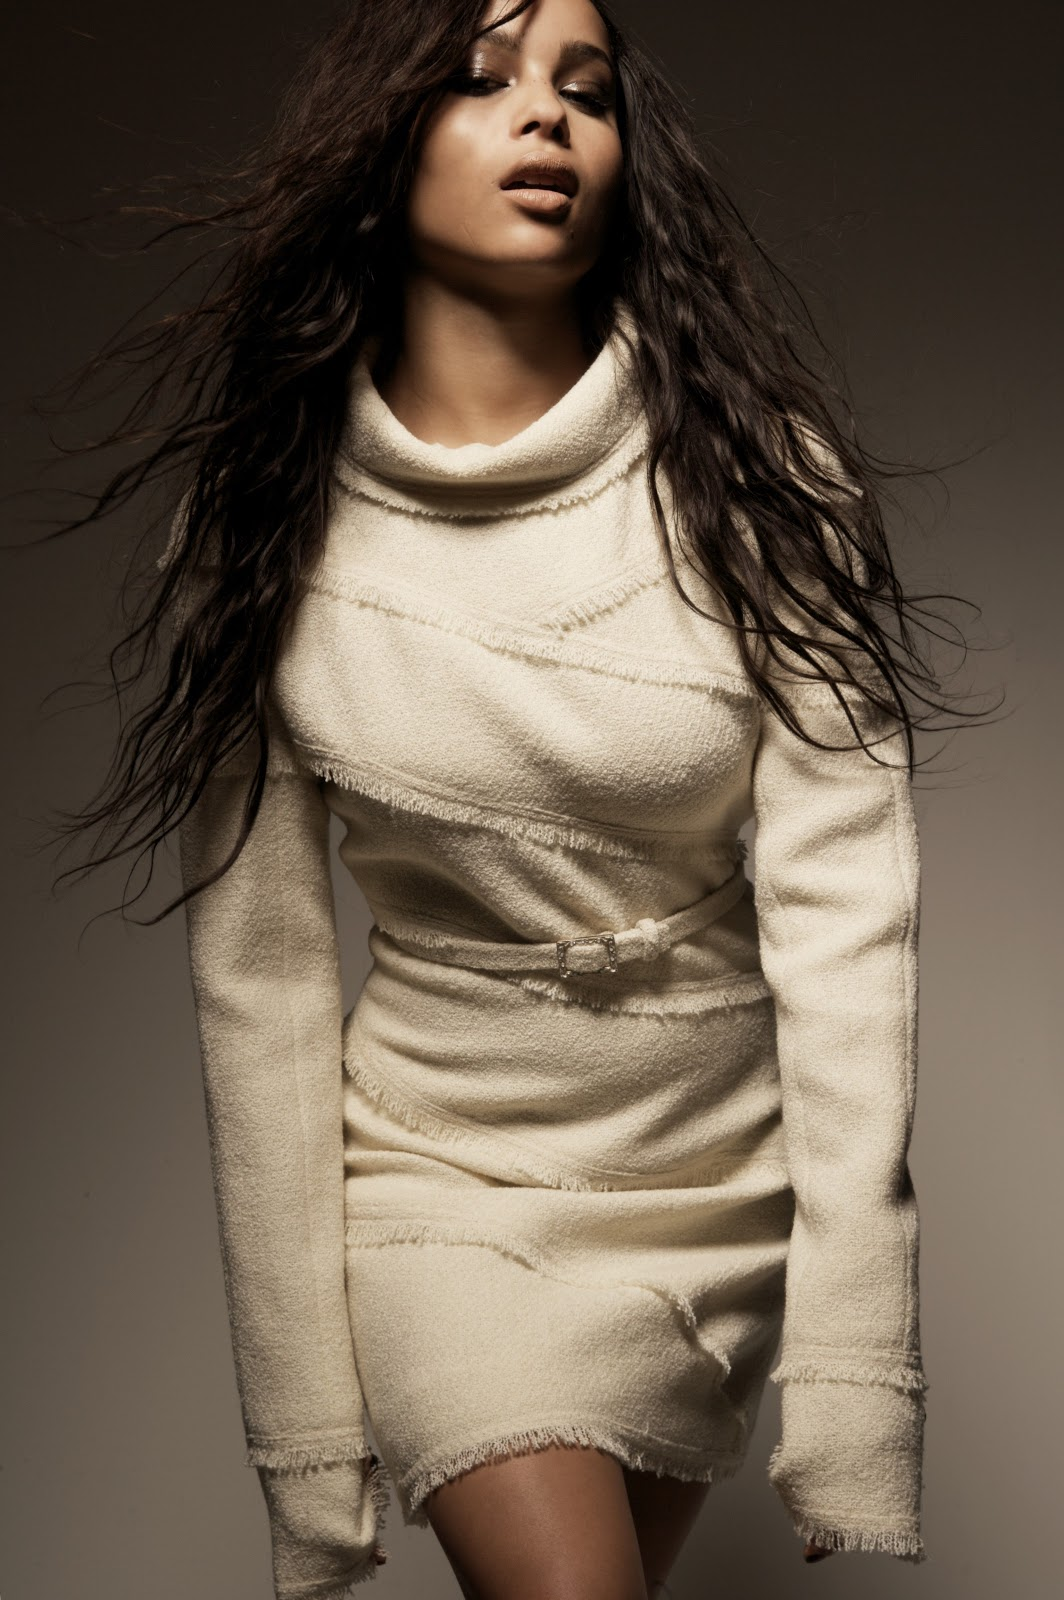 Lovely wallpapers zoe kravitz hot and sexy wallpapers 2012 - Zoe wallpaper ...